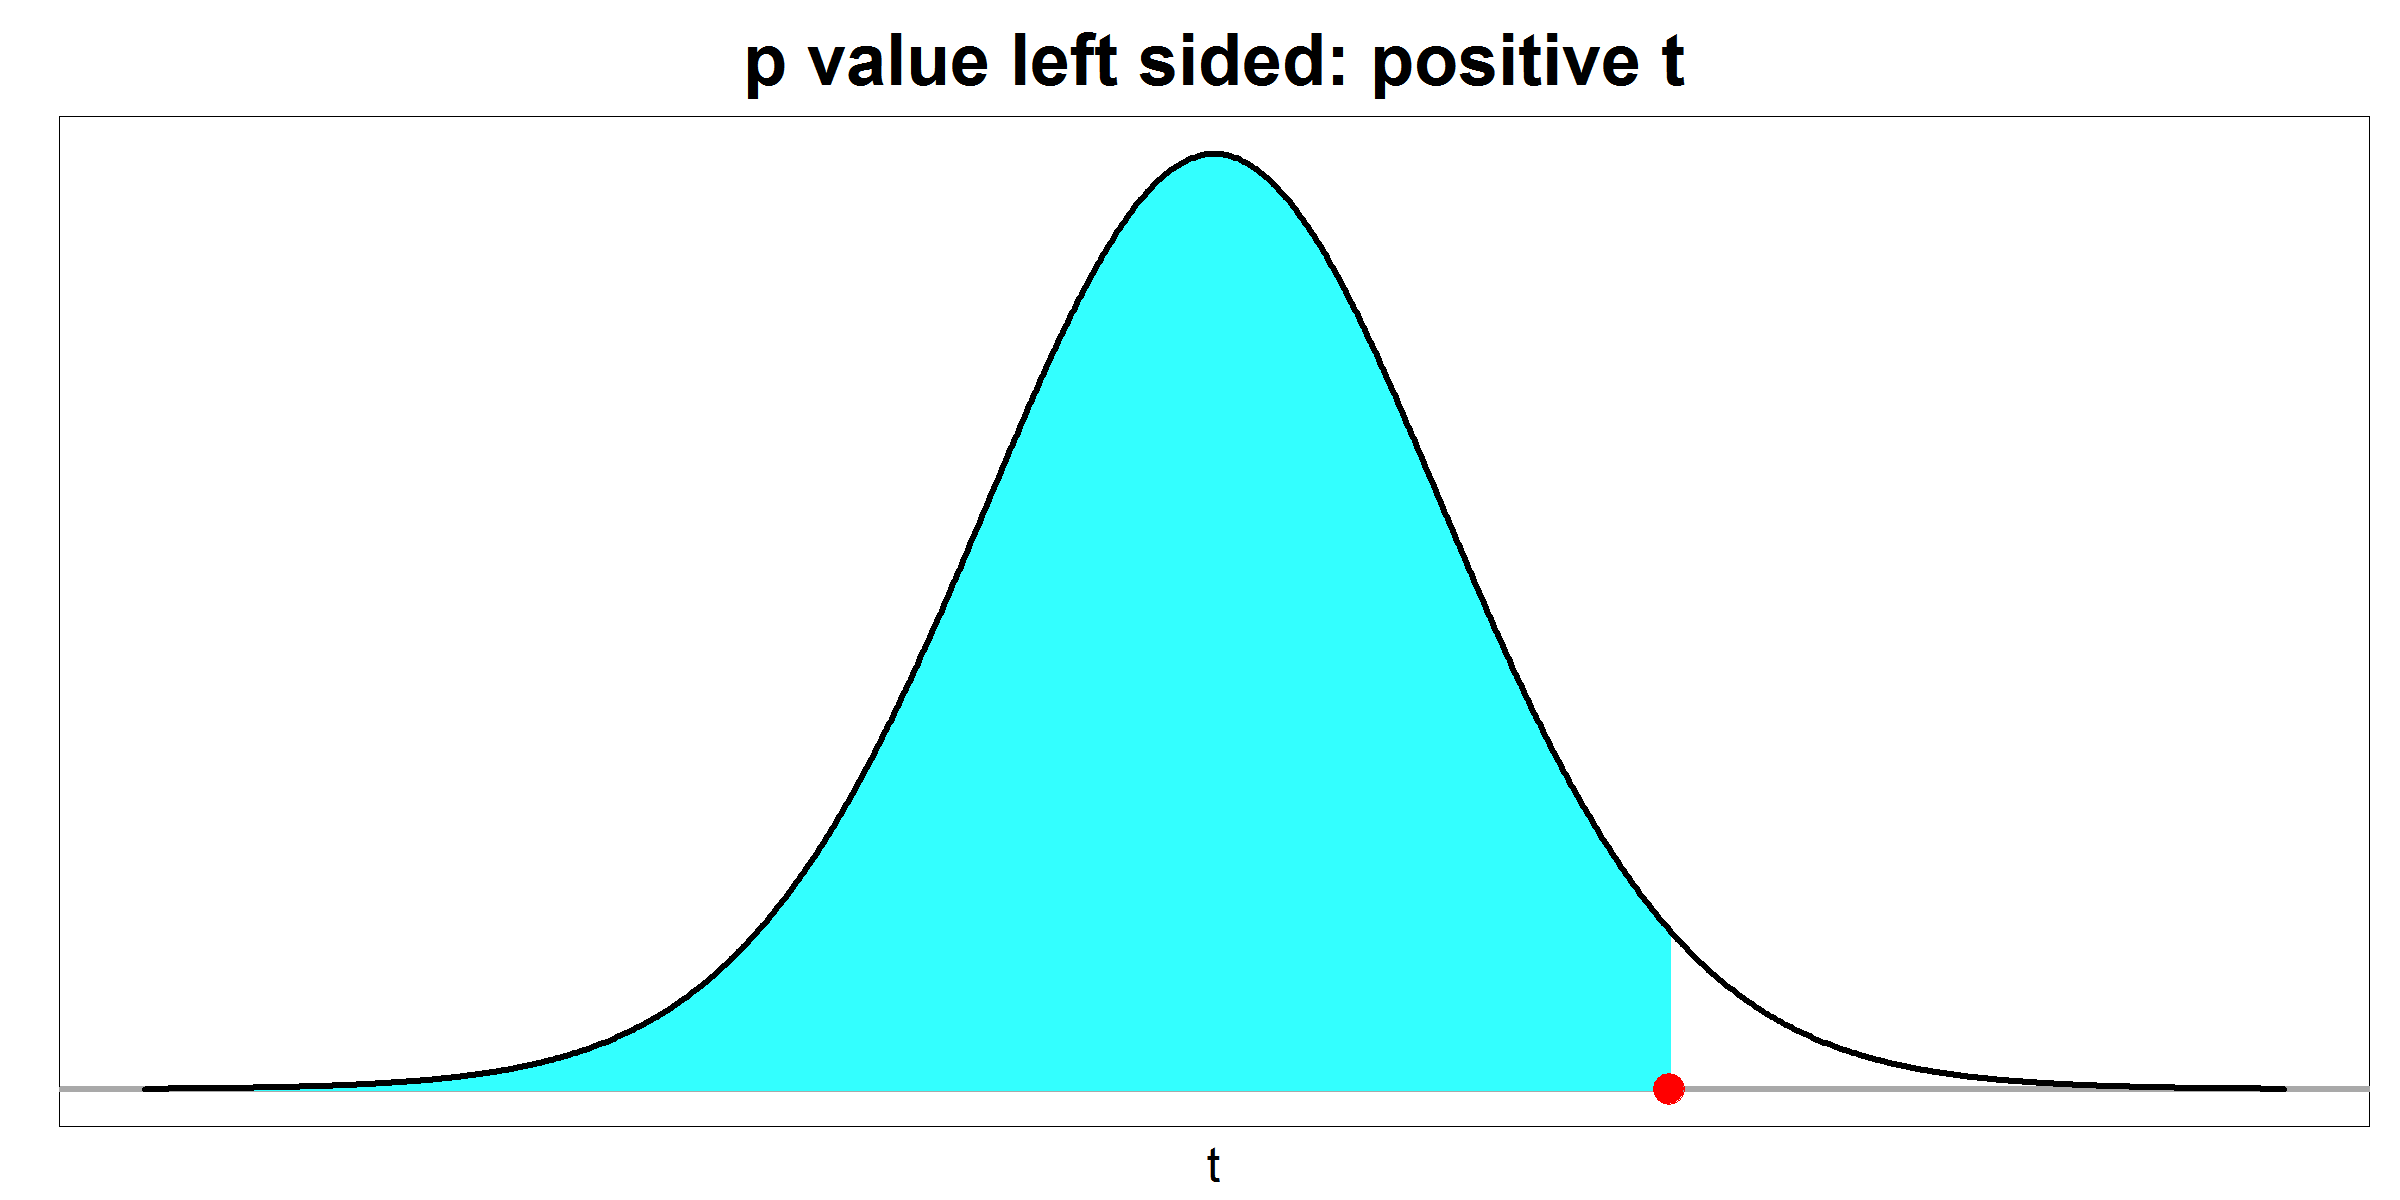 p value - left sided - positive t